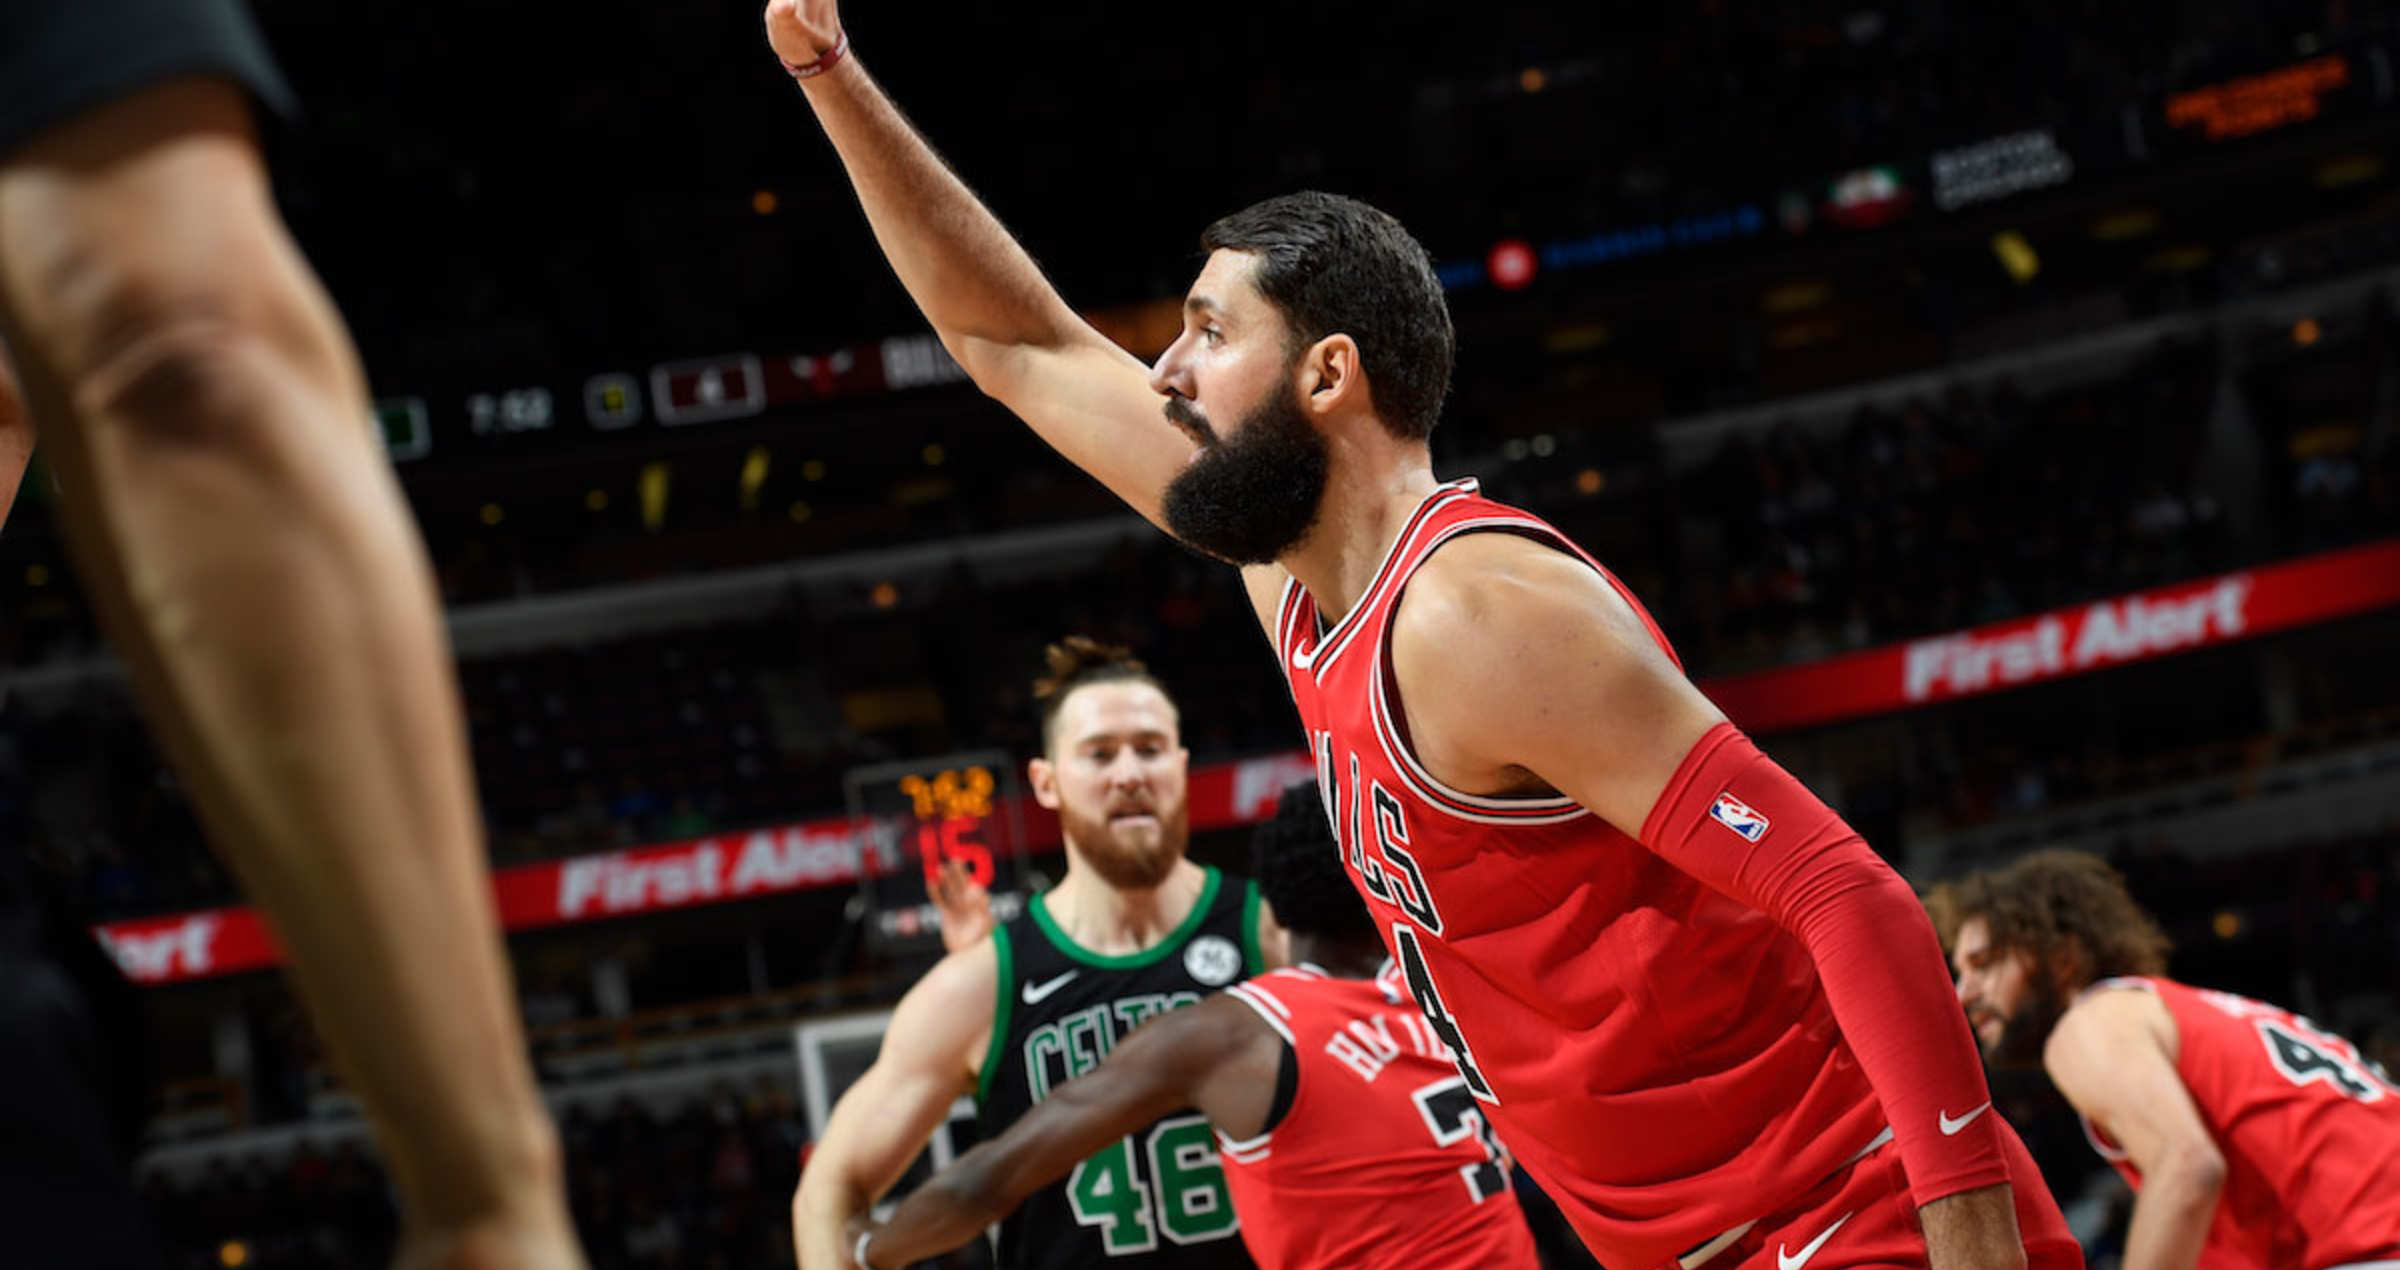 Nikola Mirotic signaling to his teammates during a game against the Boston Celtics.